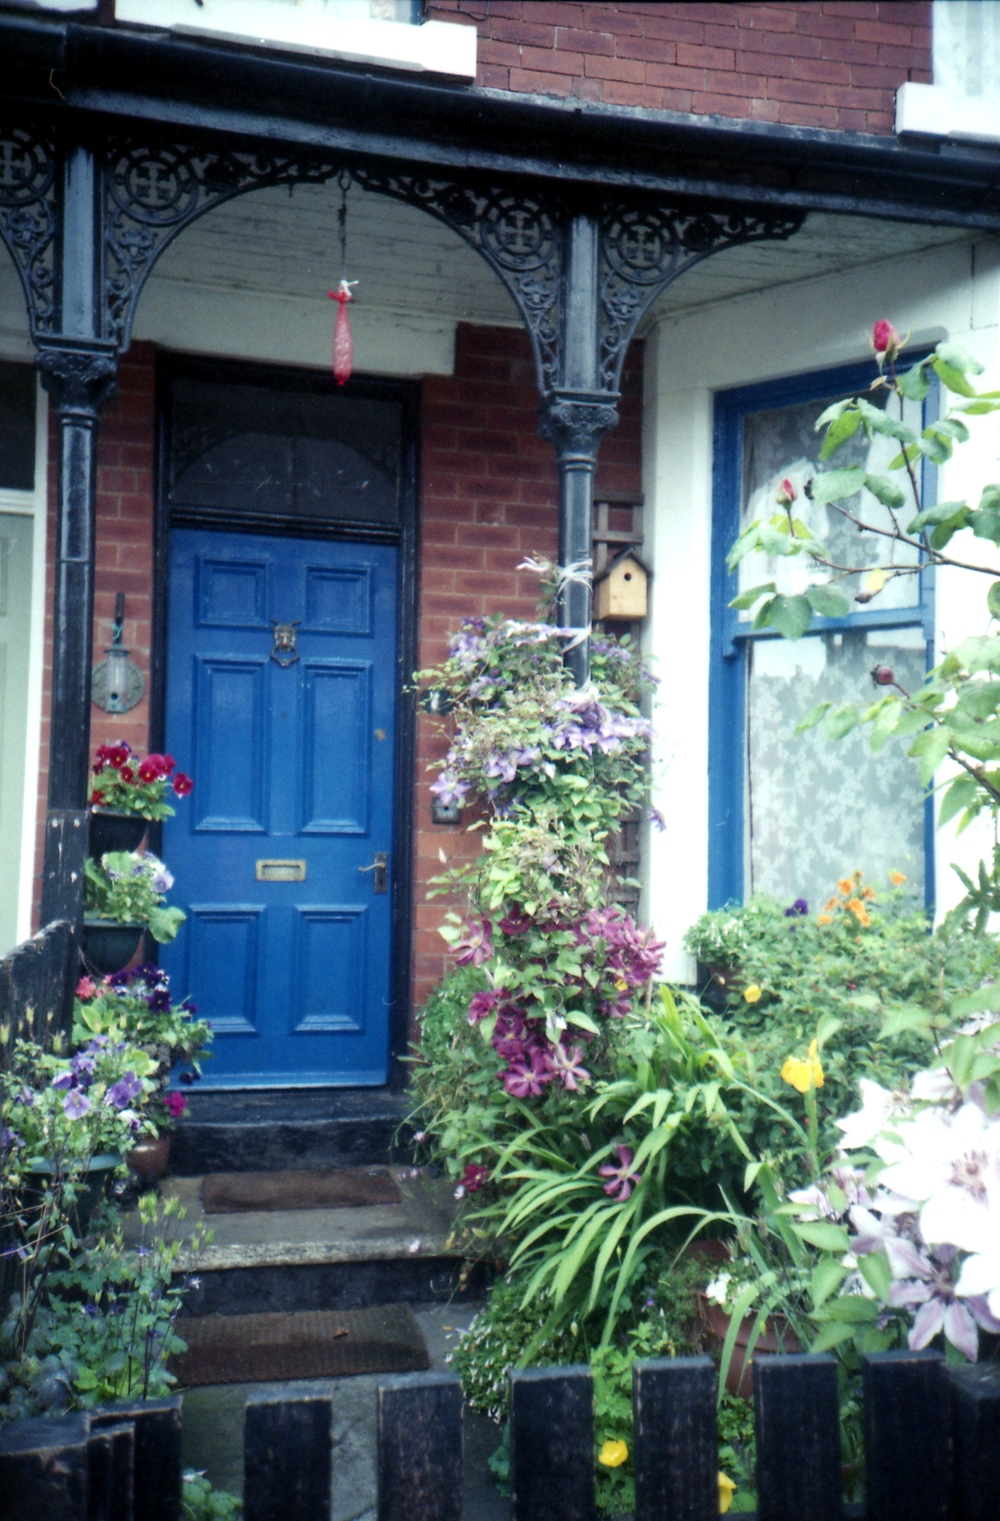 163/366 - When we buy a house I want to paint the front door a lovely colour and have flowers everywhere. House goals!